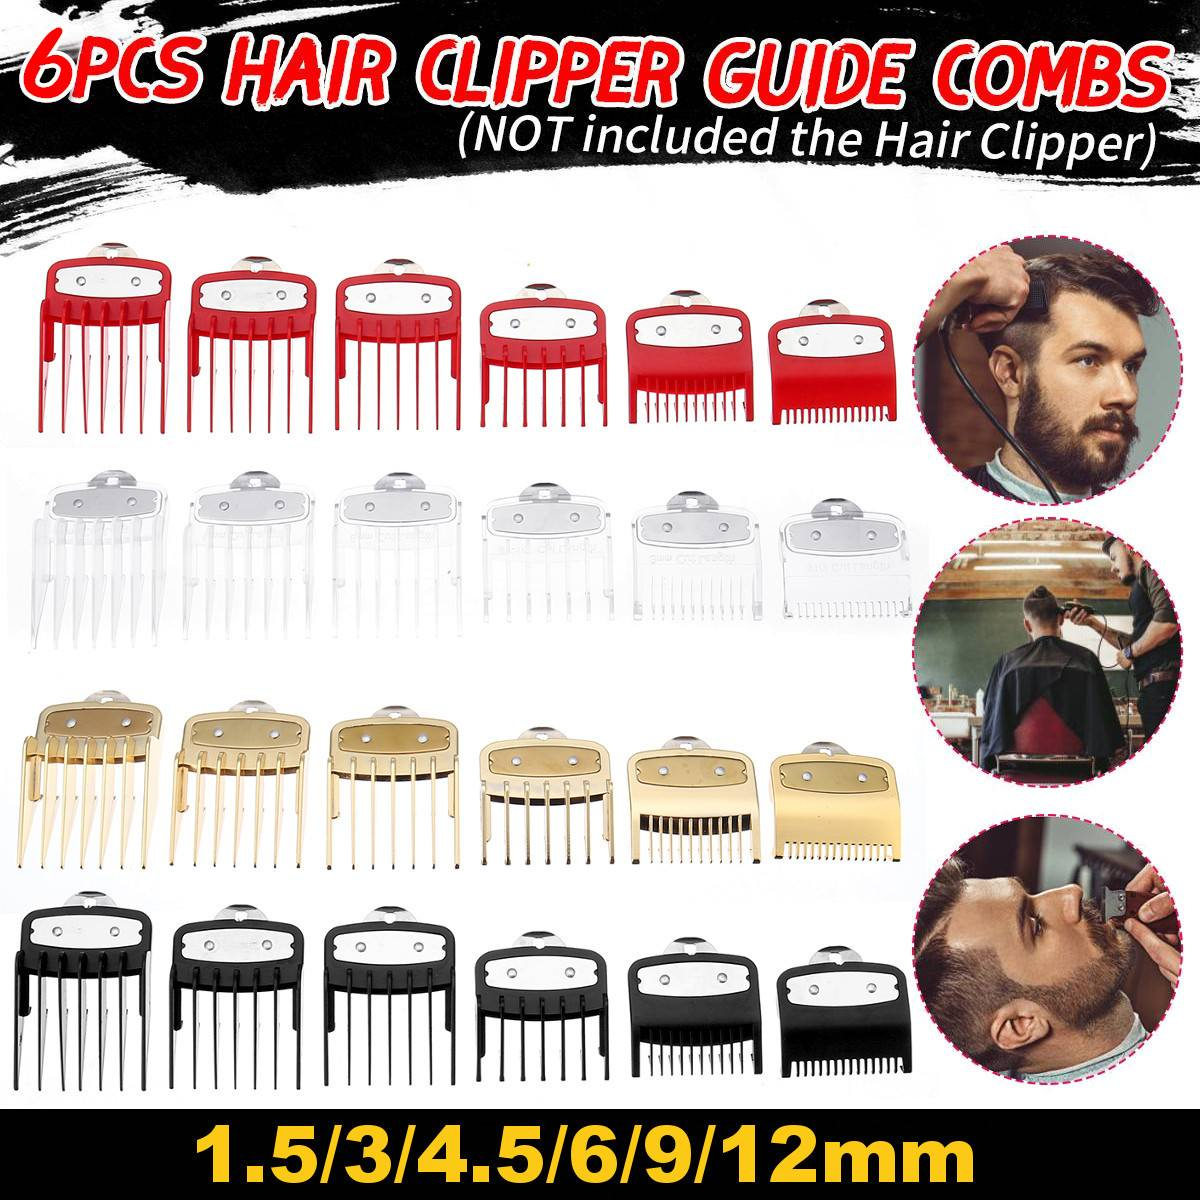 6Pcs/Set Colorful Guide Comb Multiple Sizes Metal Limited Combs Hair Clipper Cutting Tool High Quality And Brand New For WAHL